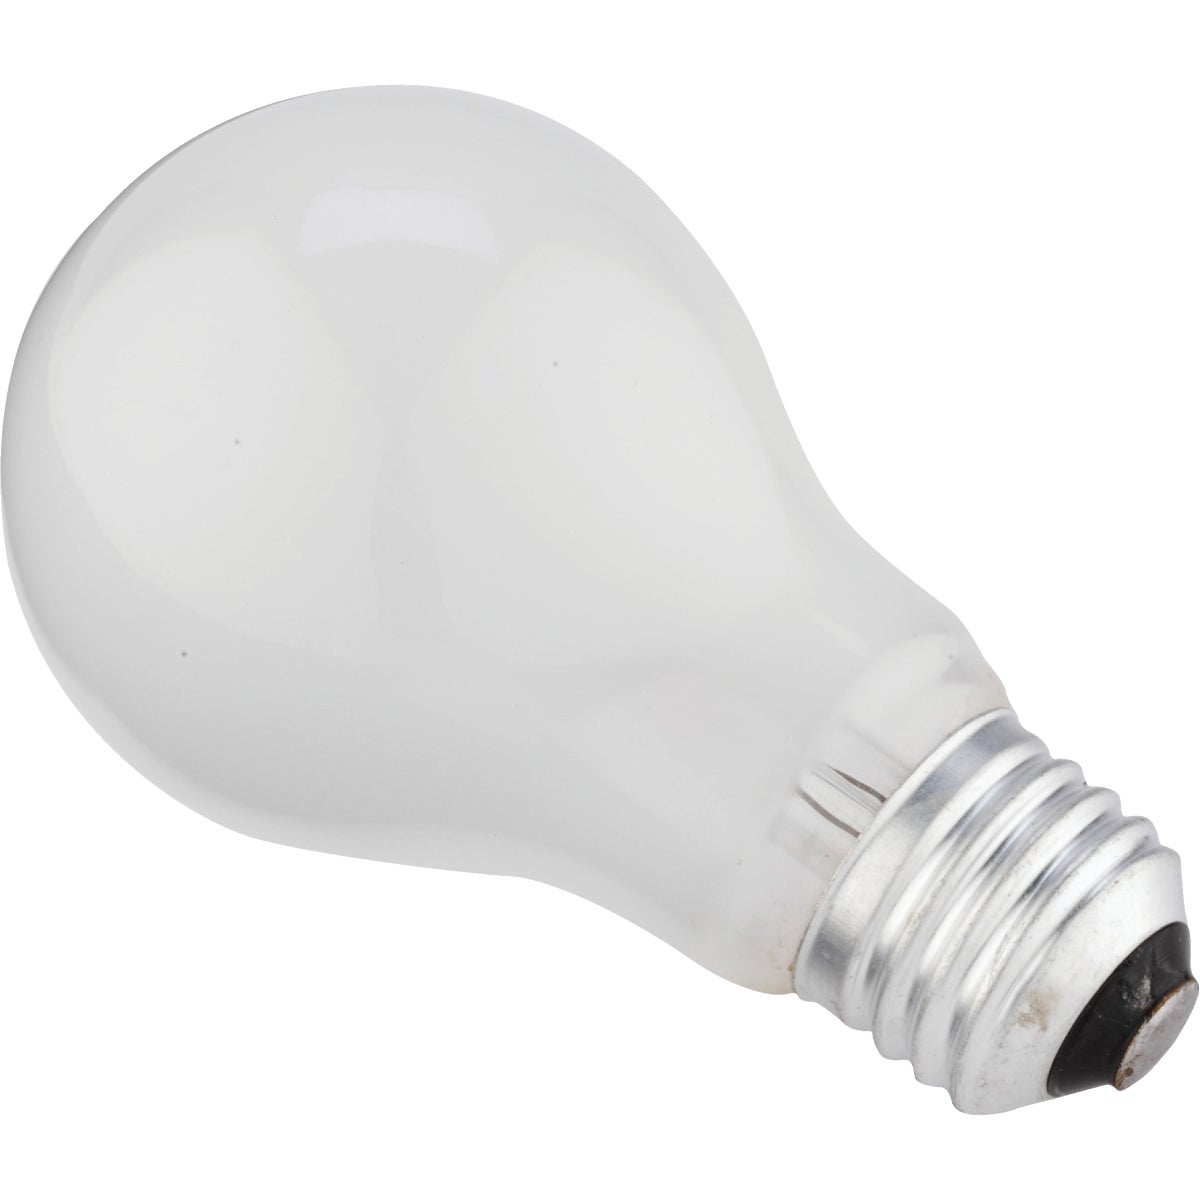 2PK 12V-50W LIGHT BULB - 54894 by Camco Mfg.